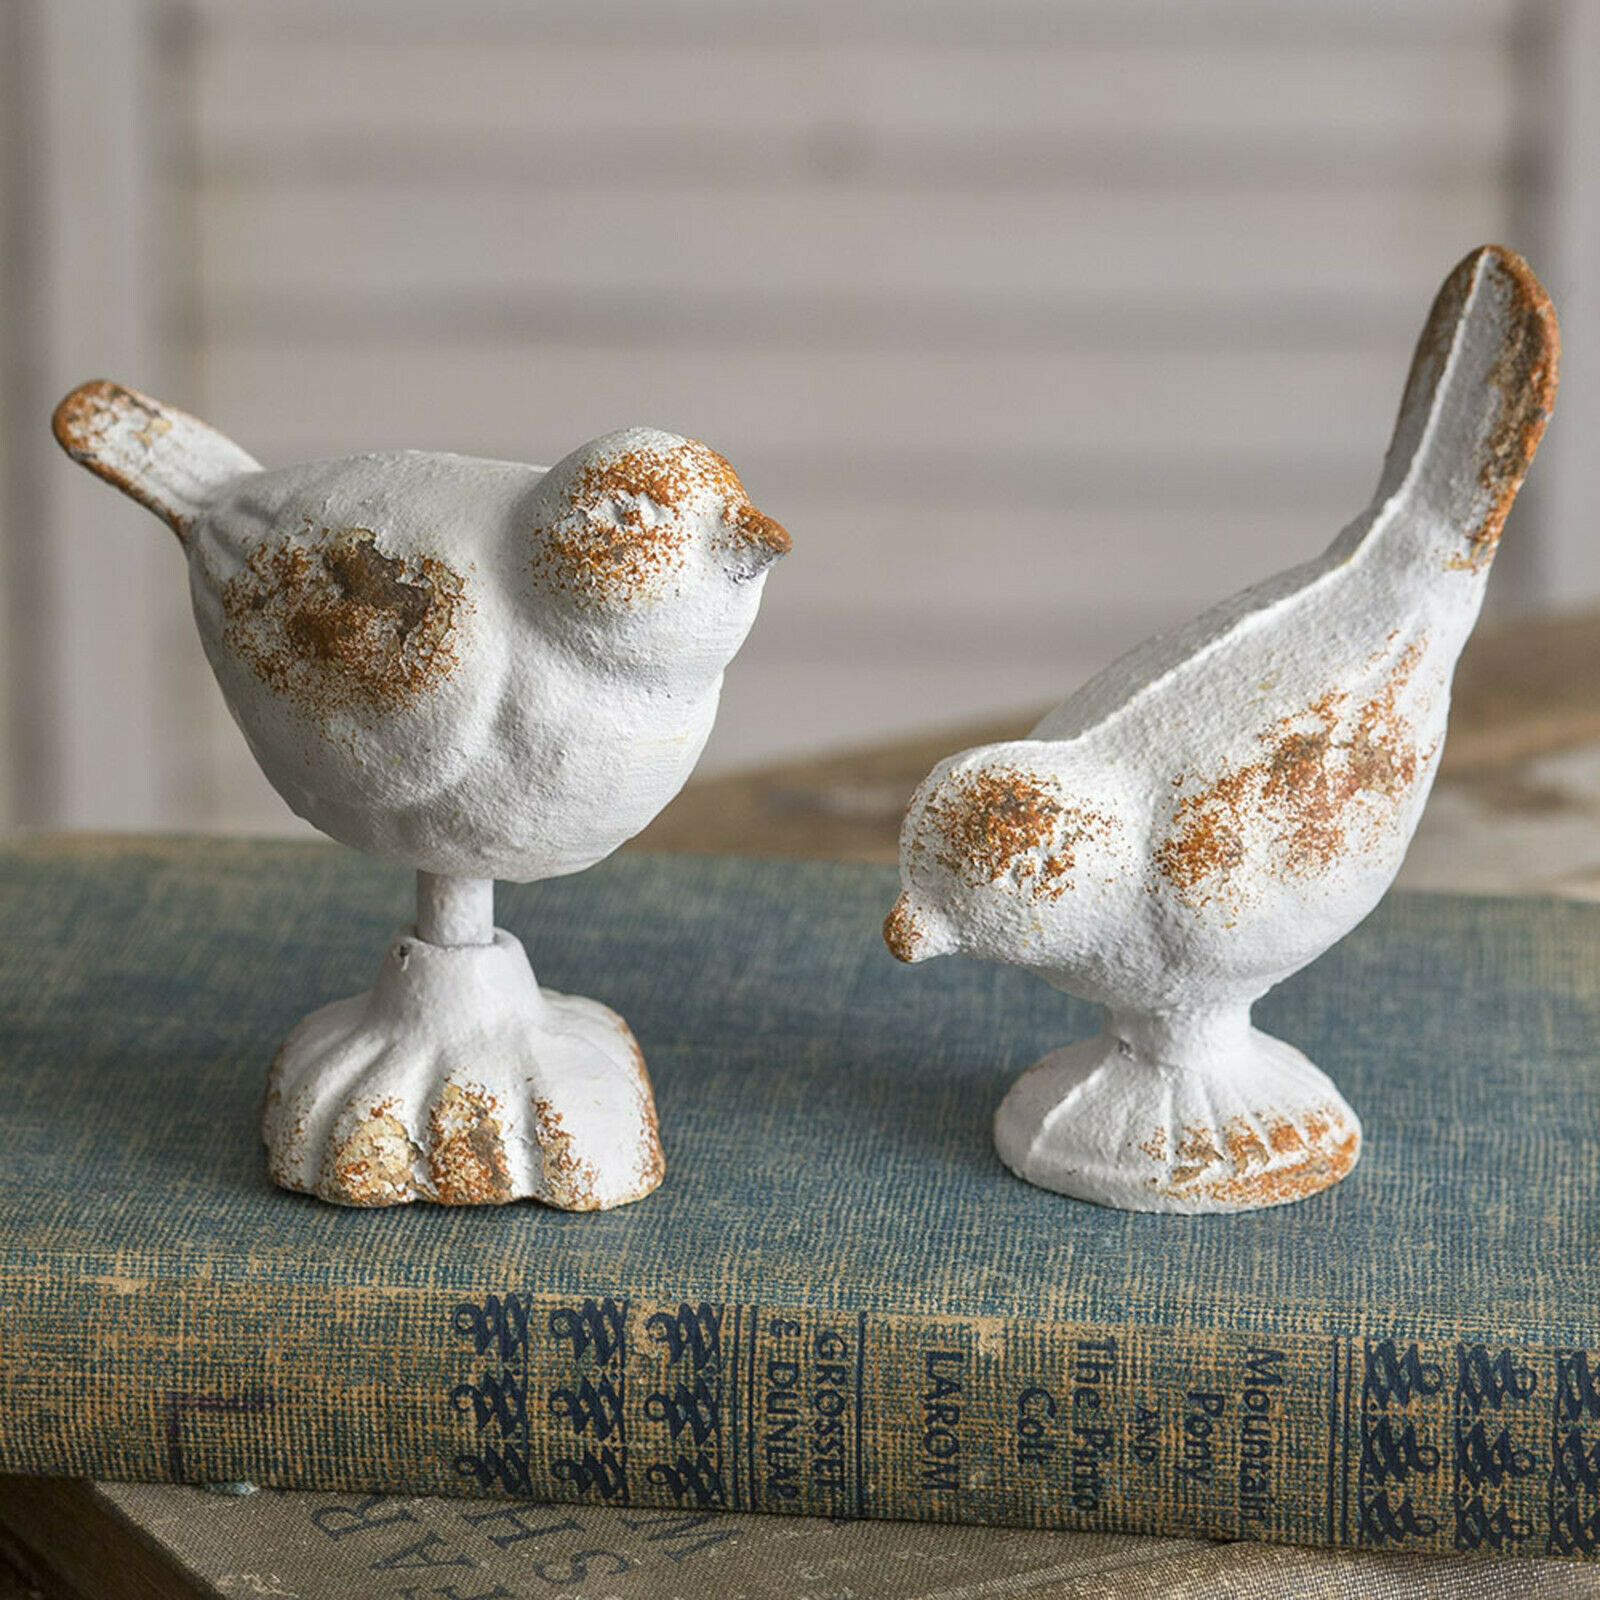 Pair Rustic White Cast Iron Bird Figurines Decorative Home Decor New White Birds